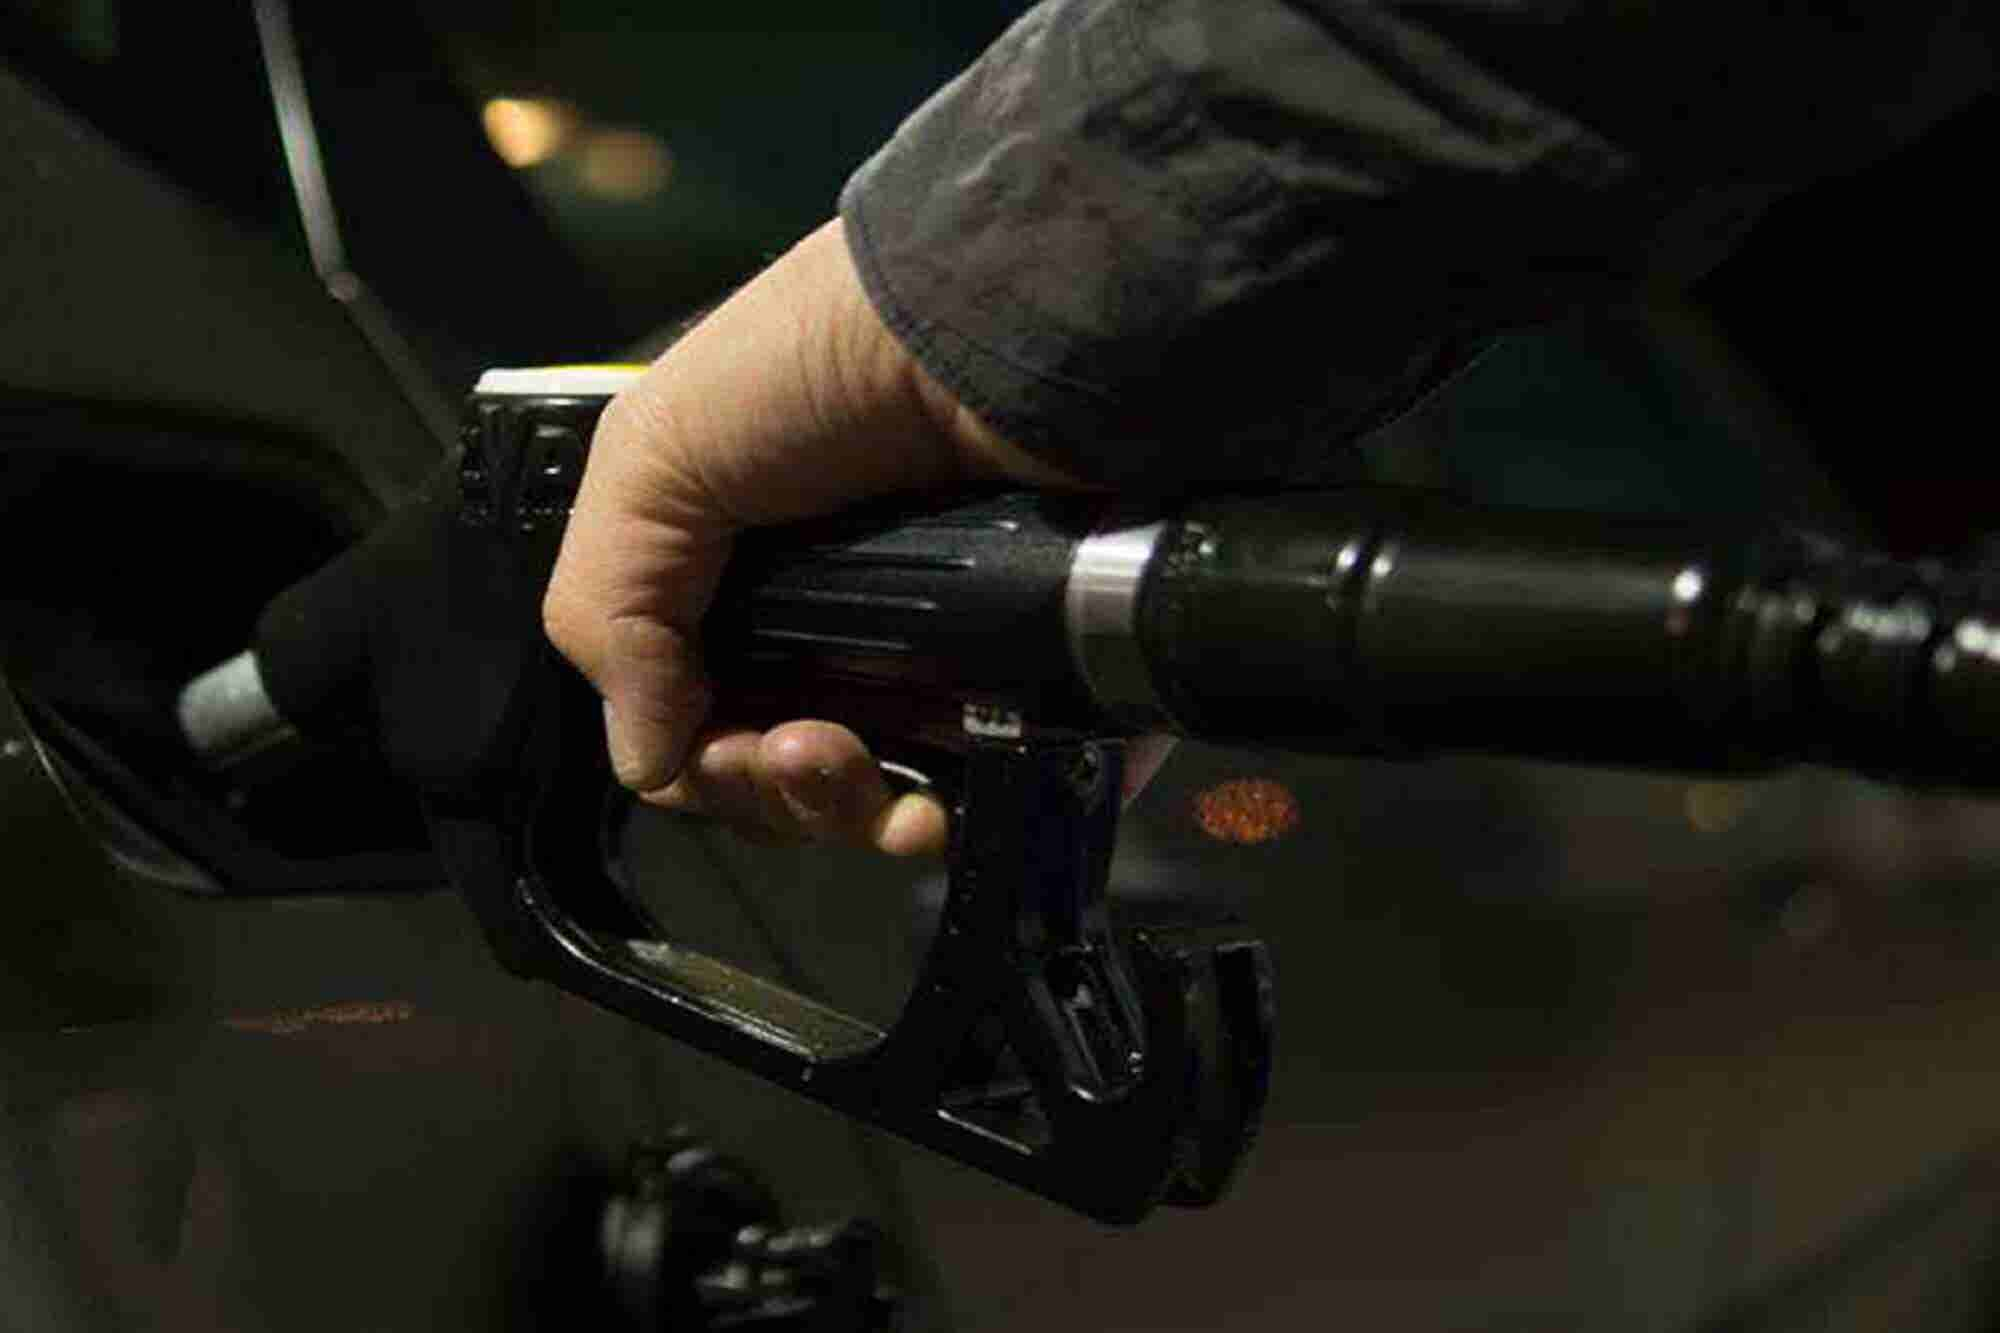 Some Key Points To Know About The Portable Petrol Pump Business